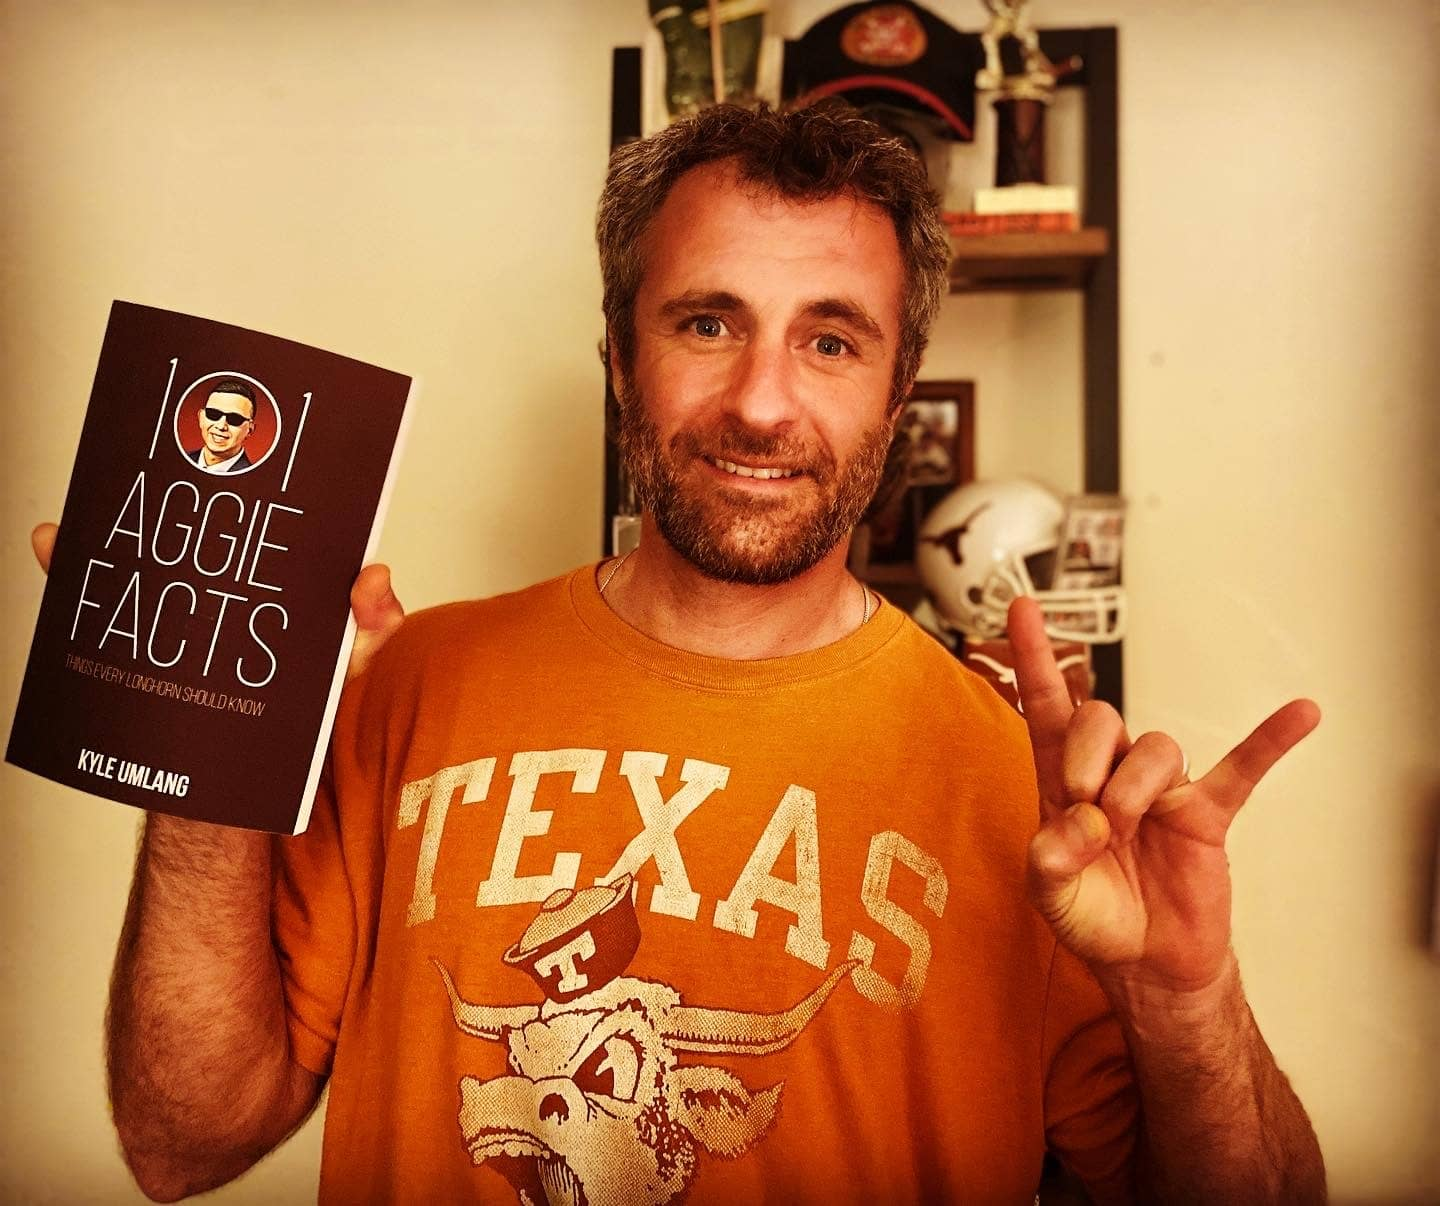 B-DOE with Kyle Umlang's book